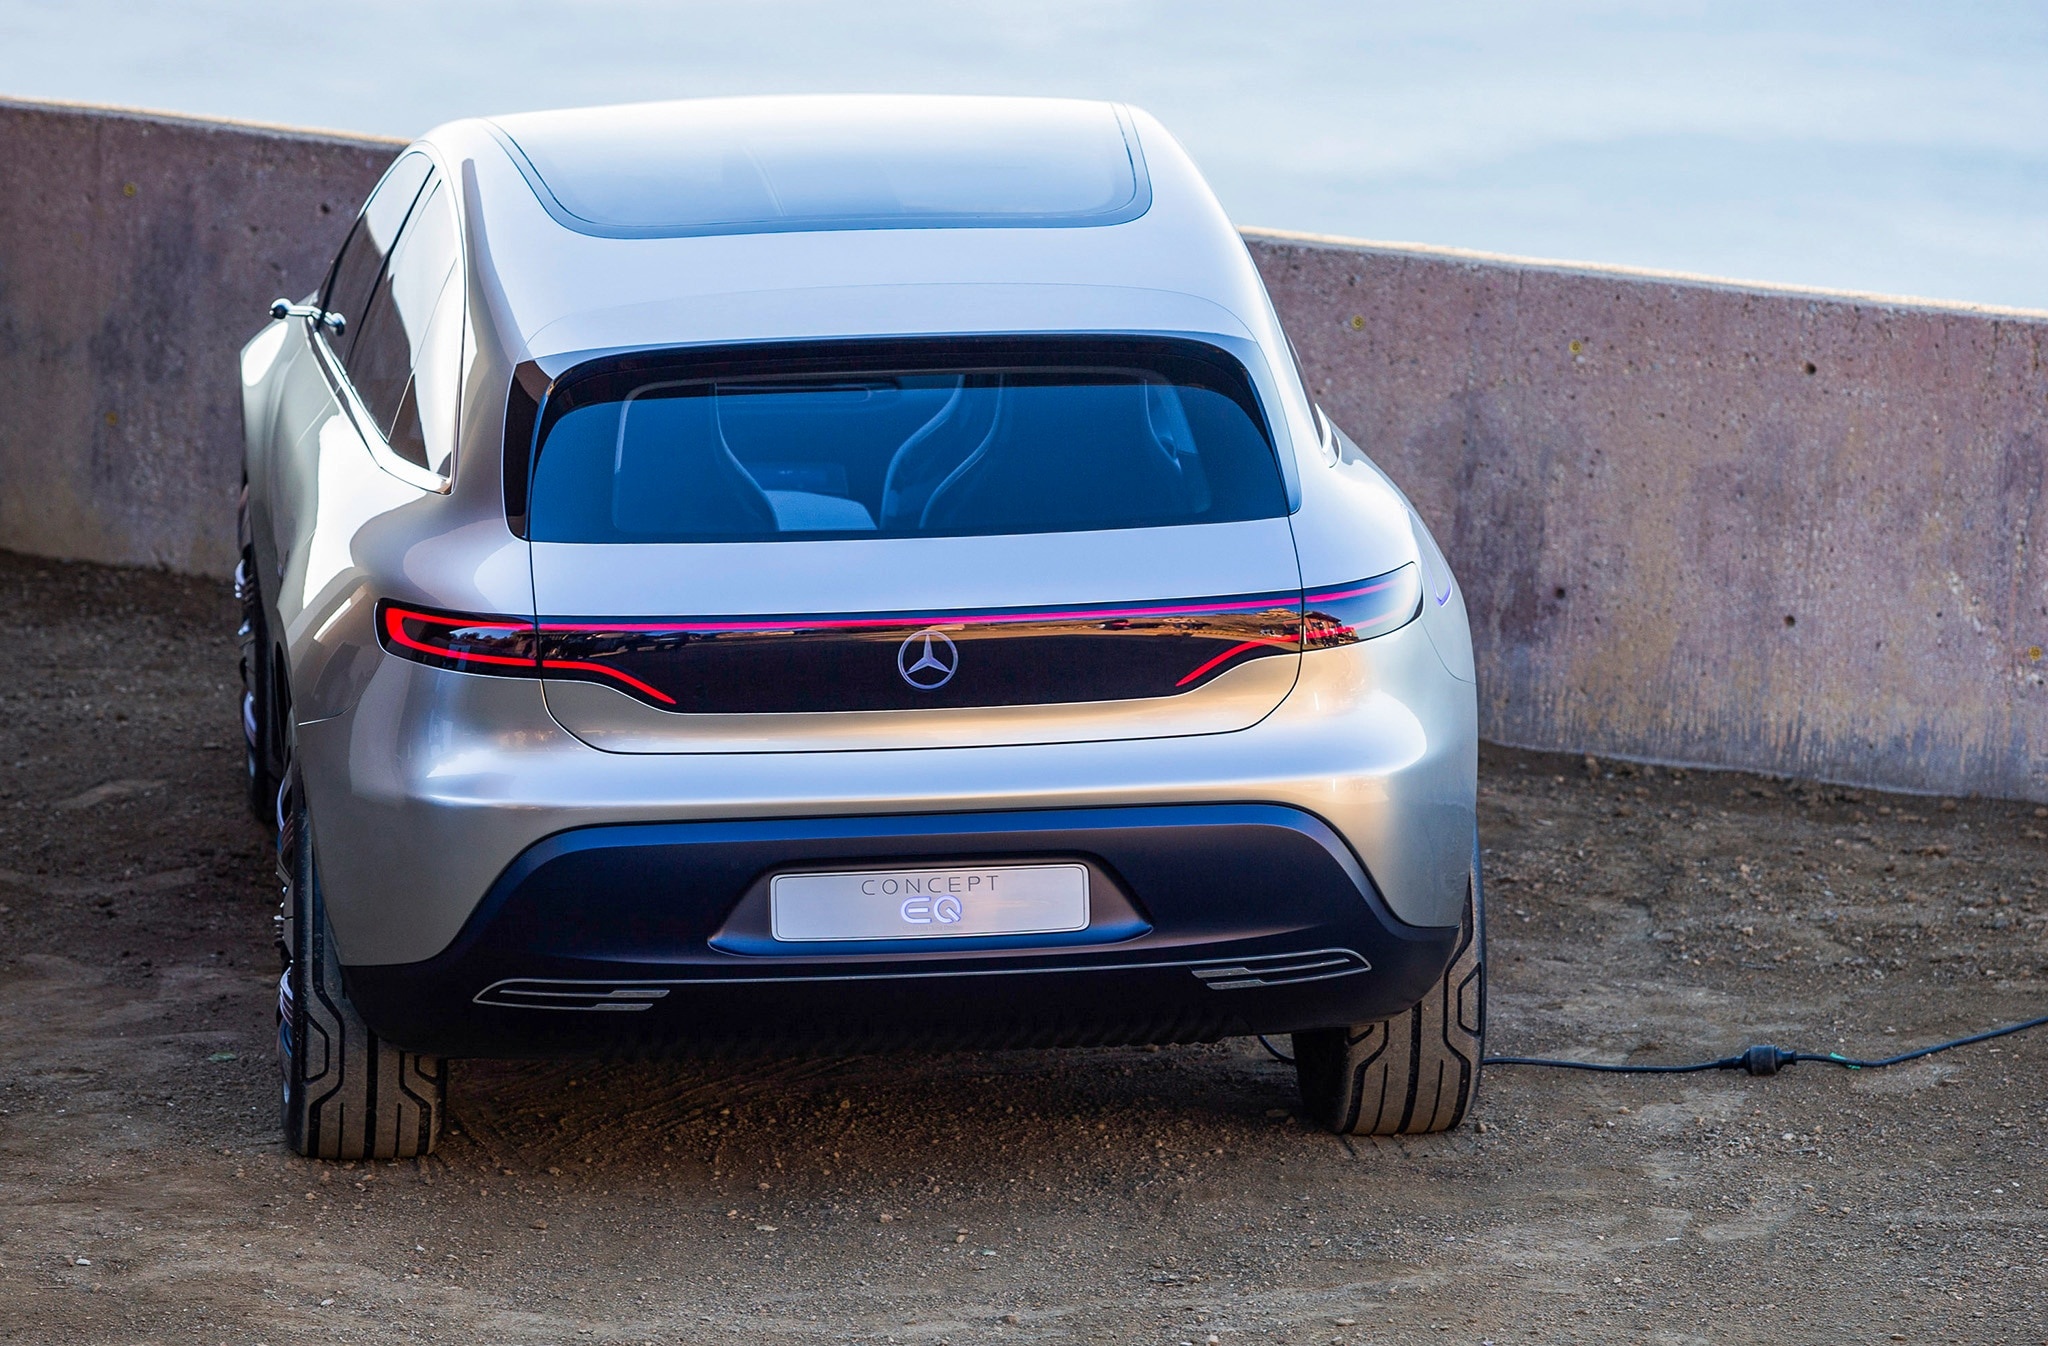 M i a and friends take on the mercedes benz concept eq for Mercedes benz concept eq